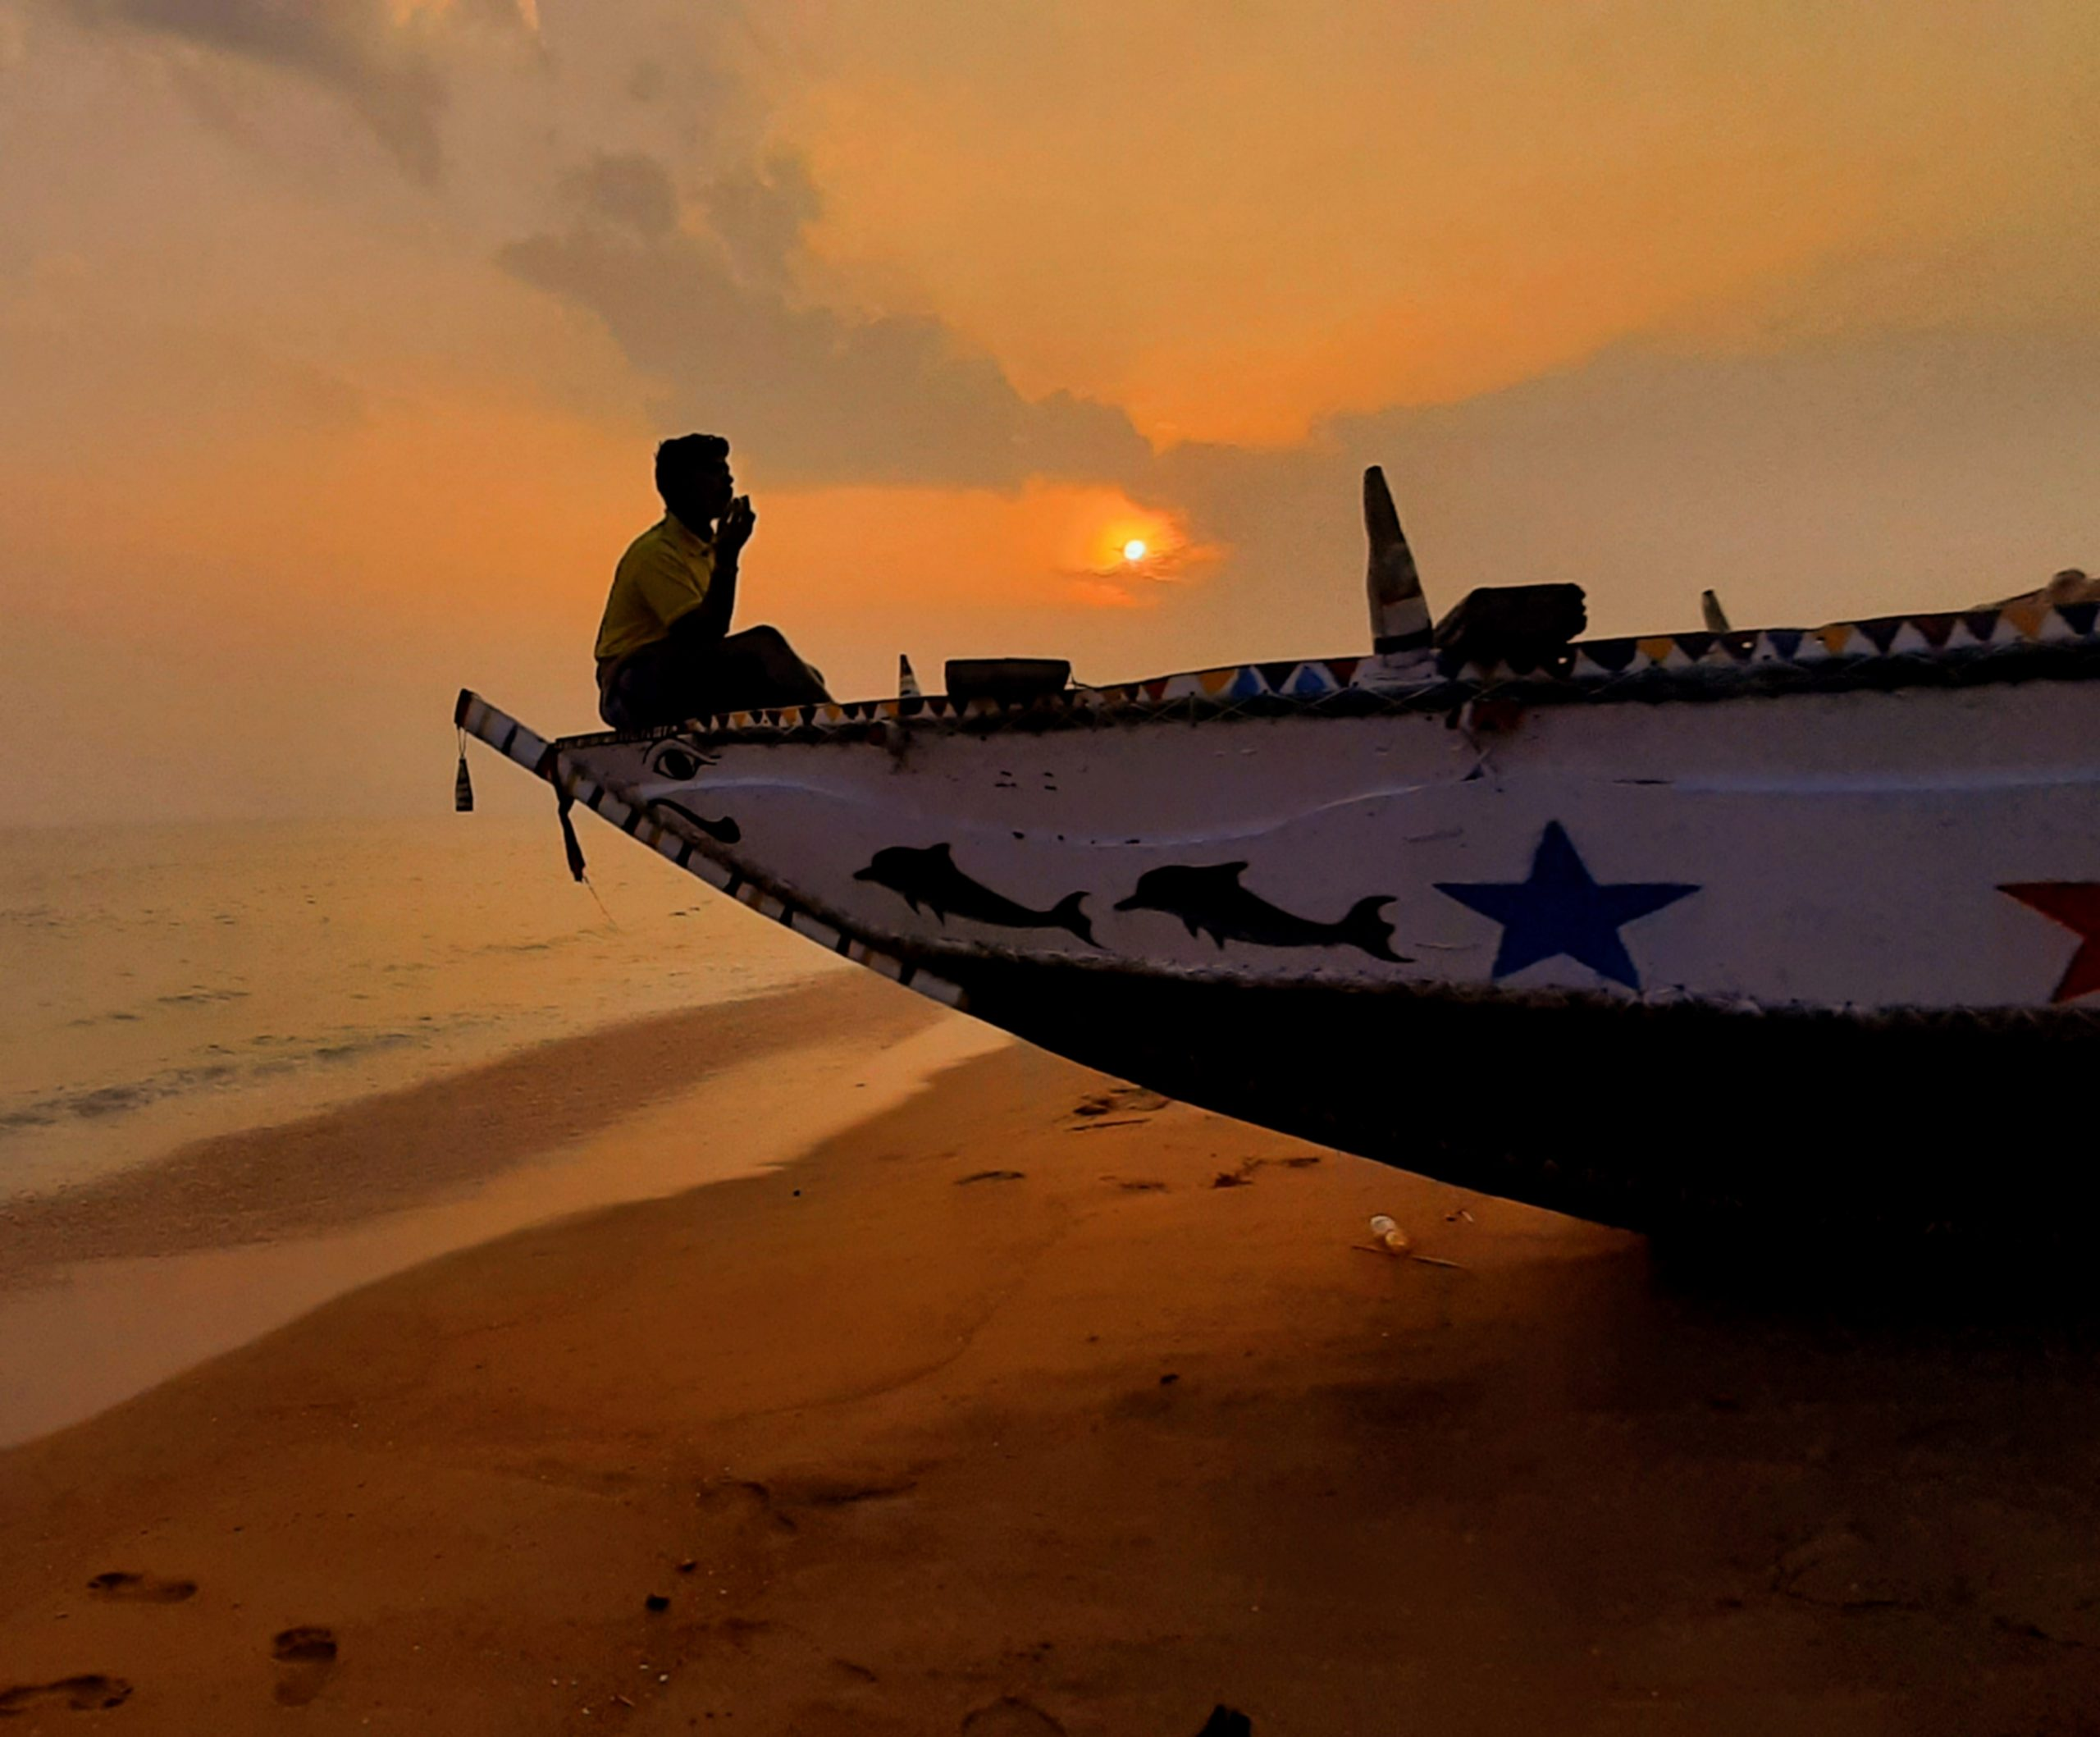 Fisherman Sitting in Boat at Sunset